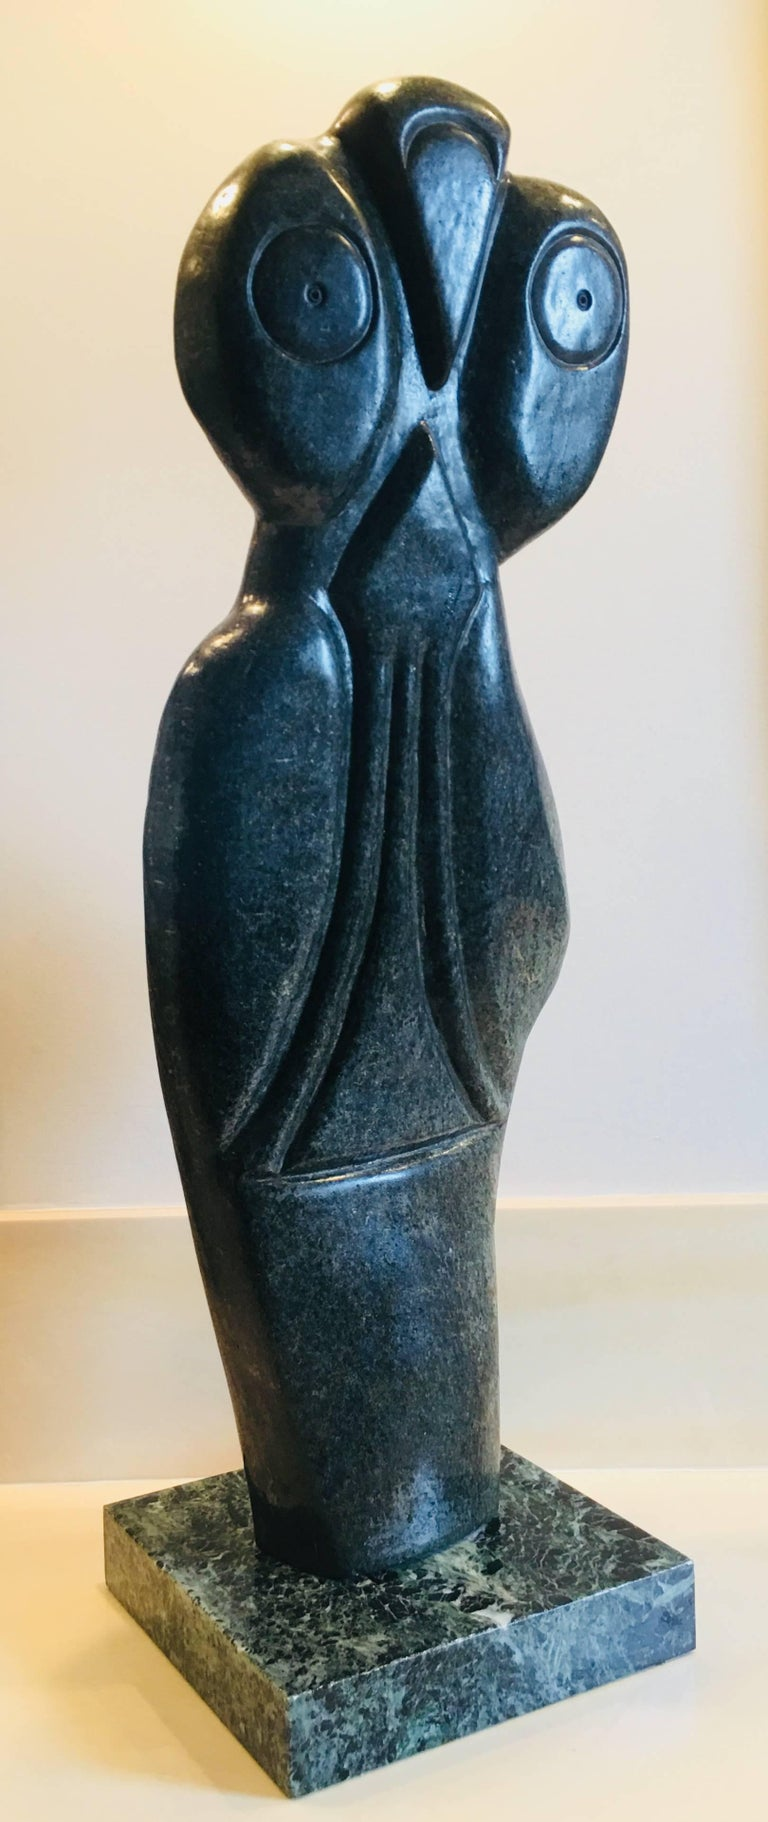 Bauden Khoreay's, carved Stone Sculpture of Owl, Malawi, Africa, circa 1970 For Sale 8